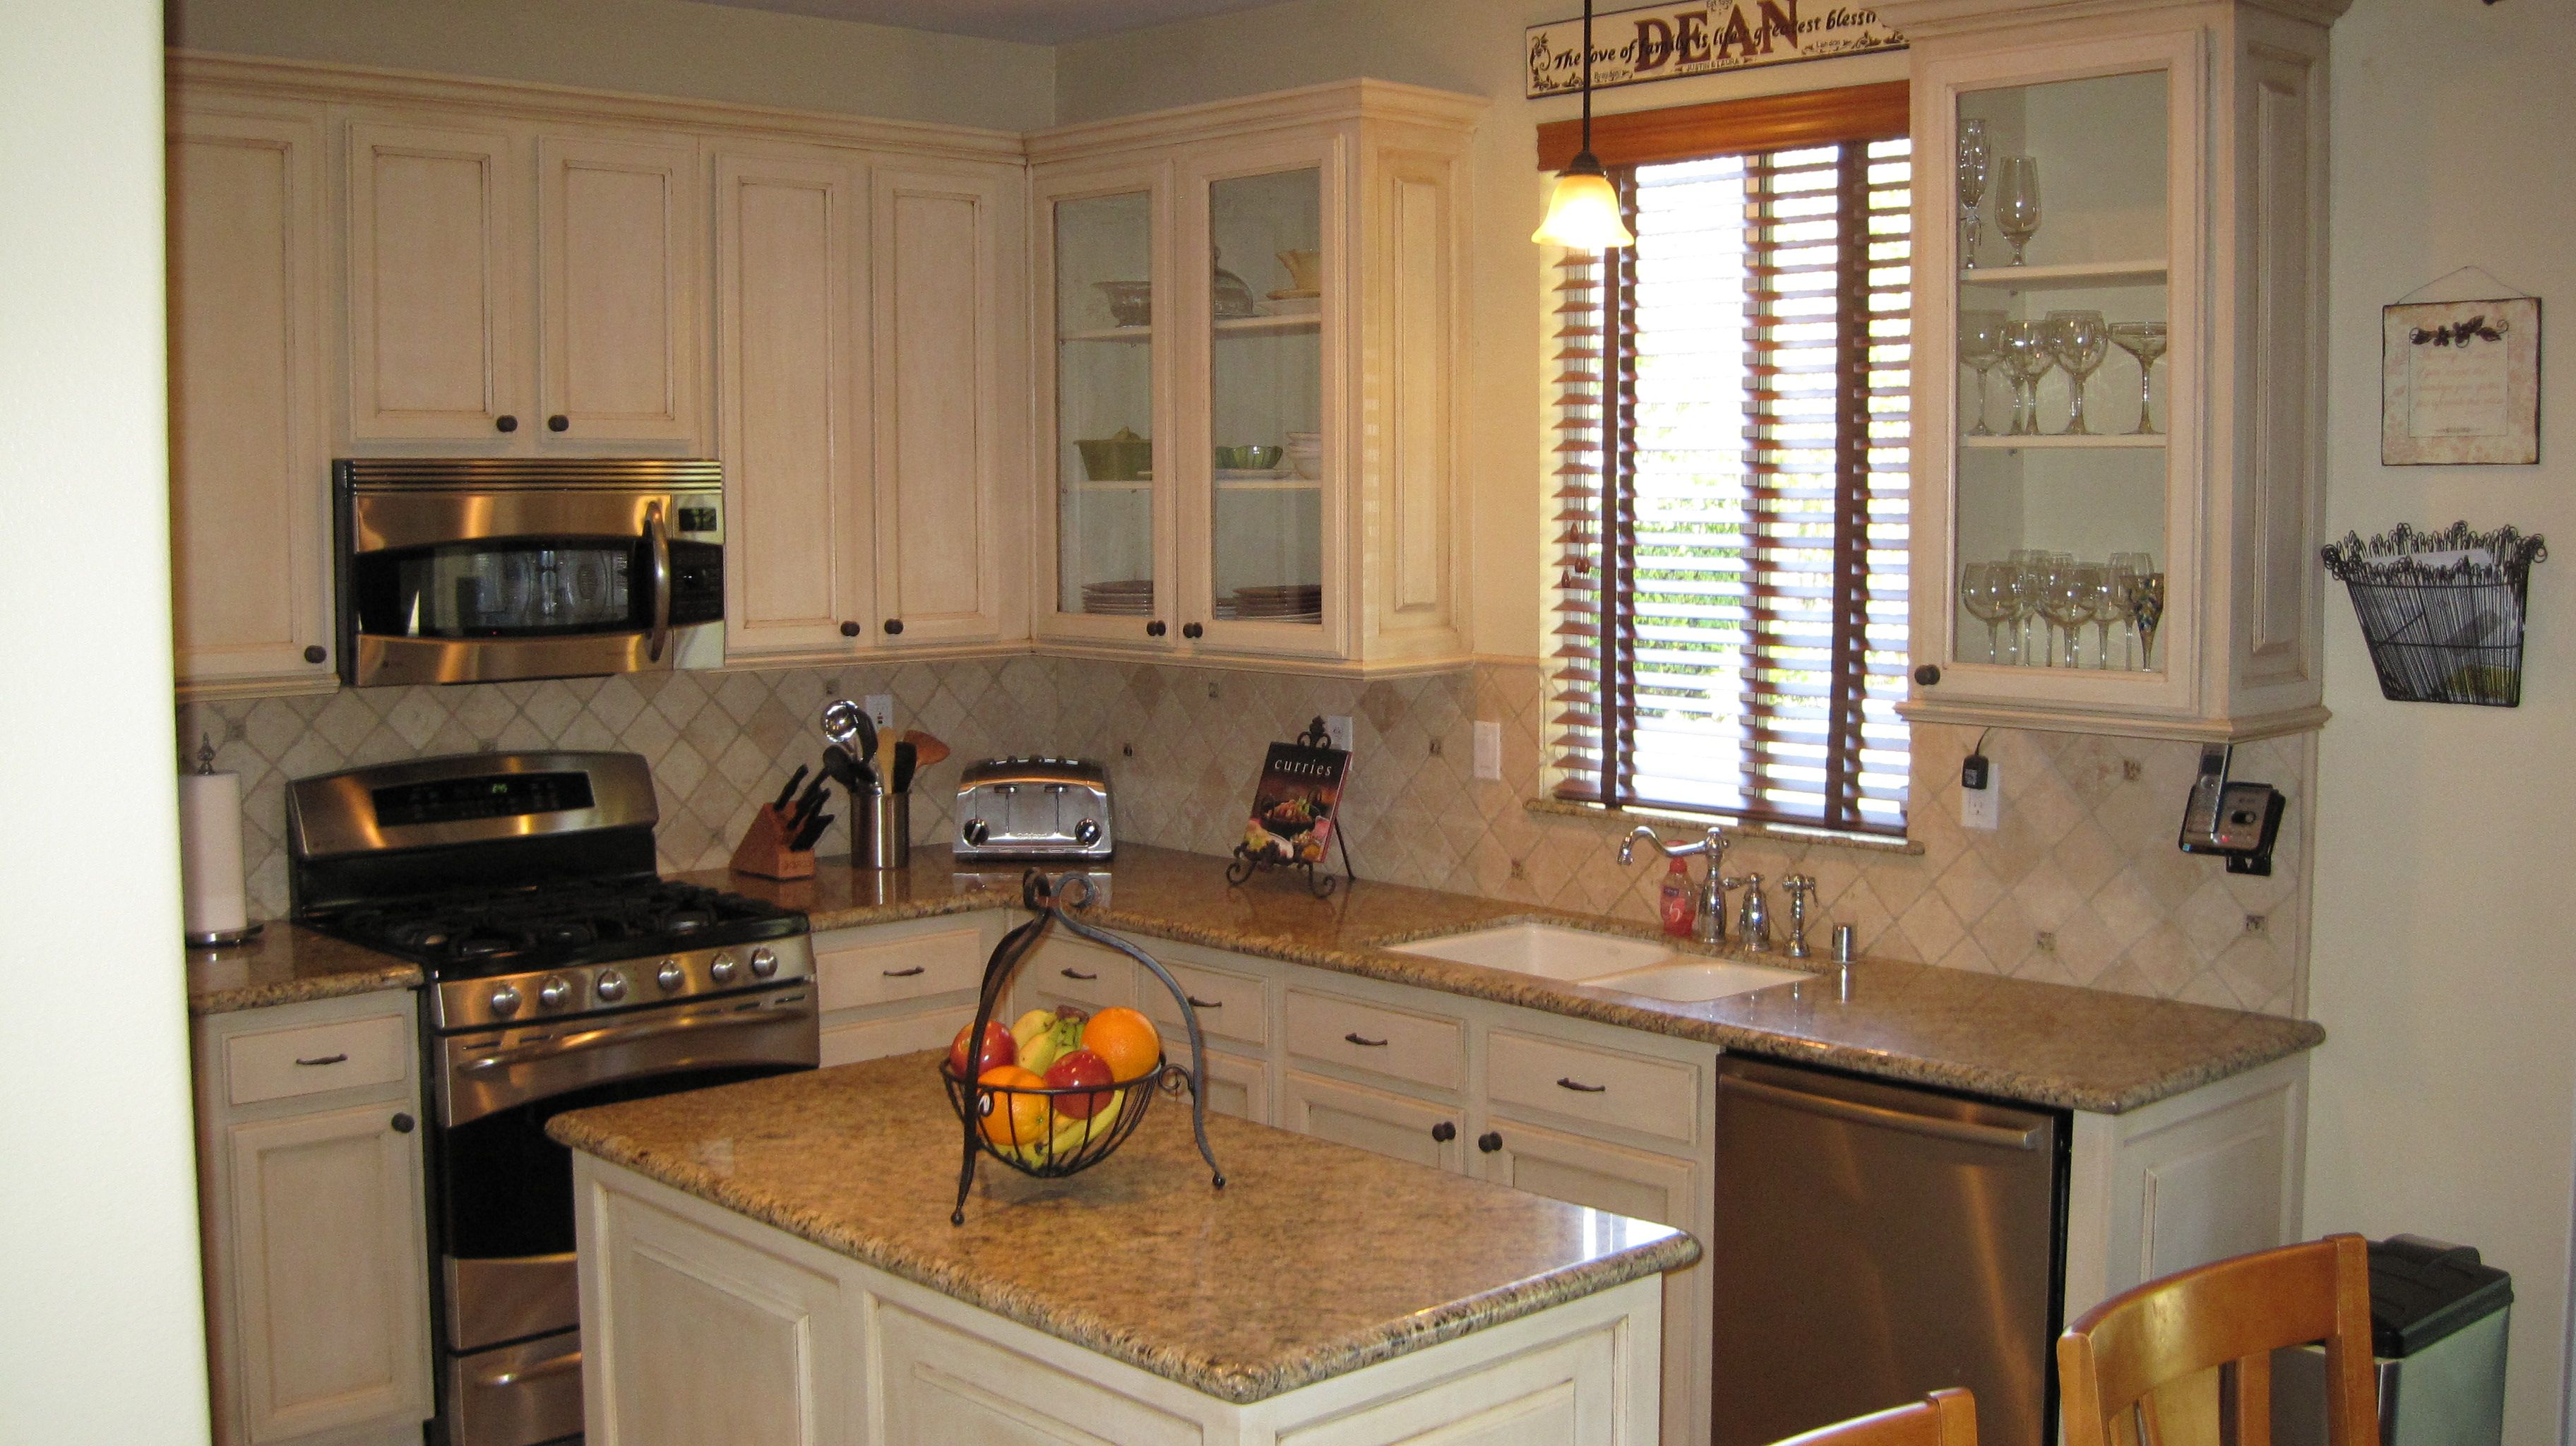 Easy artisan making refinishing easy for everyone for Ideas to redo old kitchen cabinets